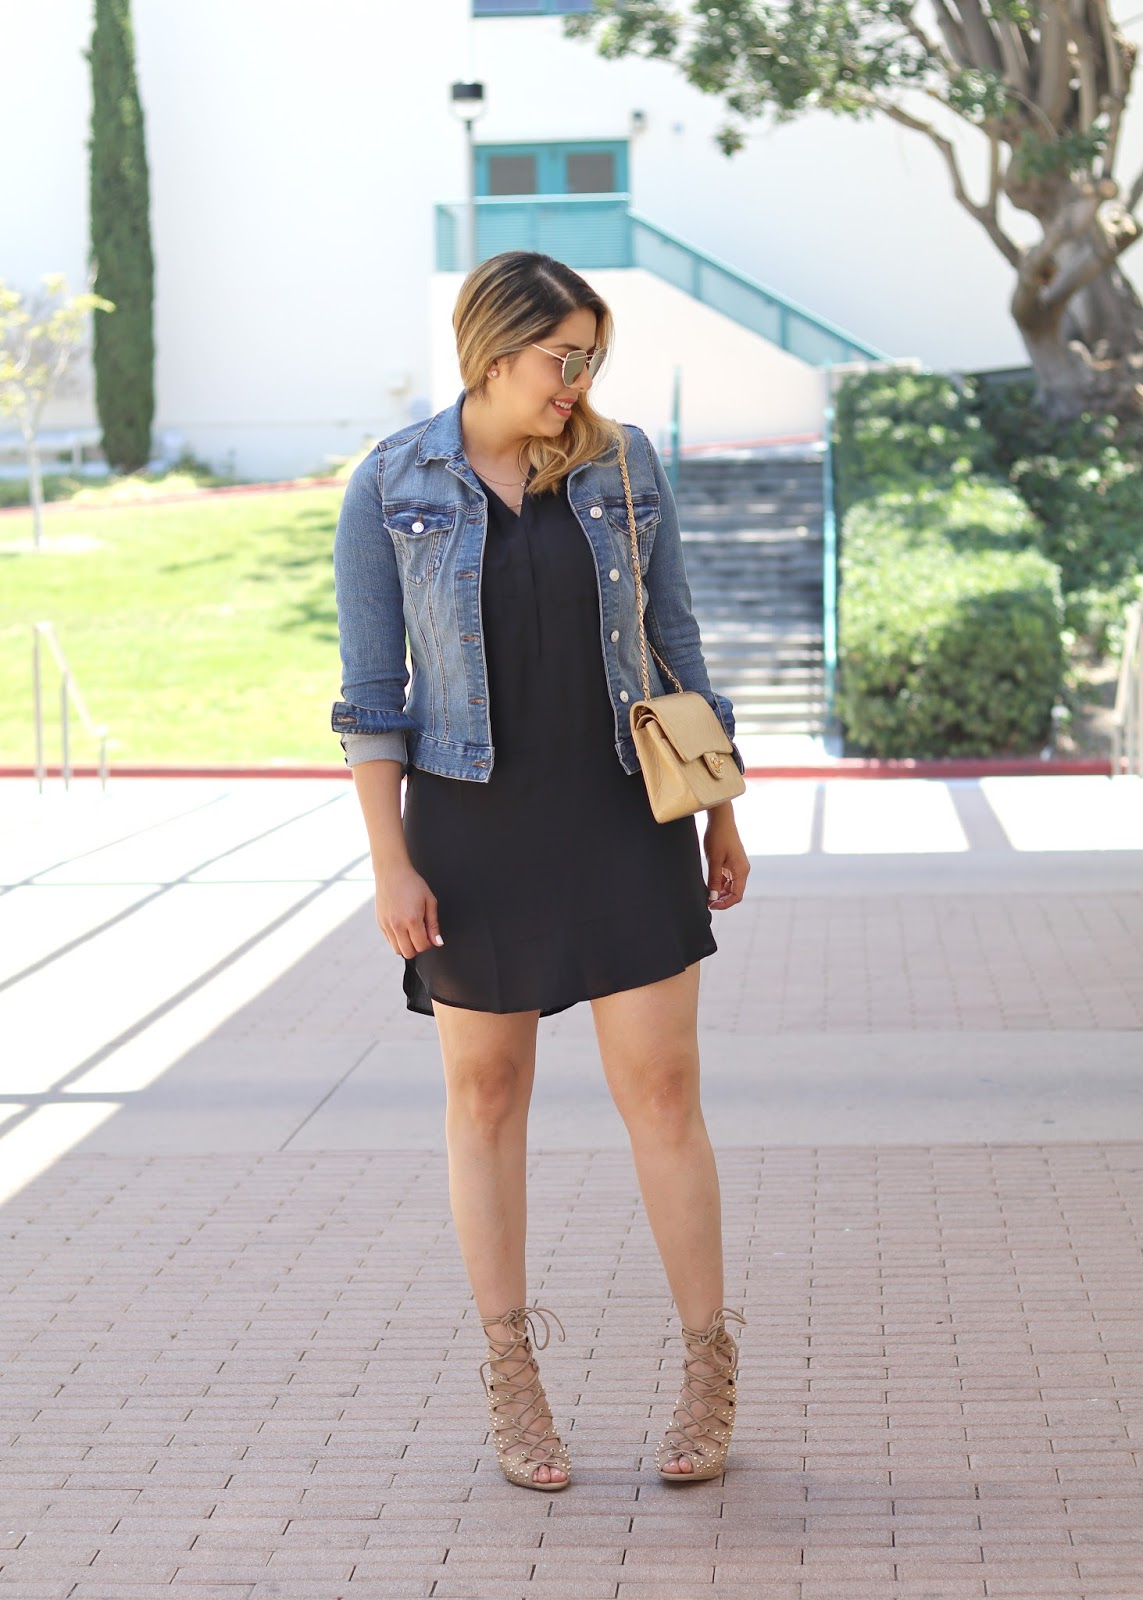 nude chanel outfit, how to wear a beige chanel purse, chanel purse in a casual outfit, so cal fashion